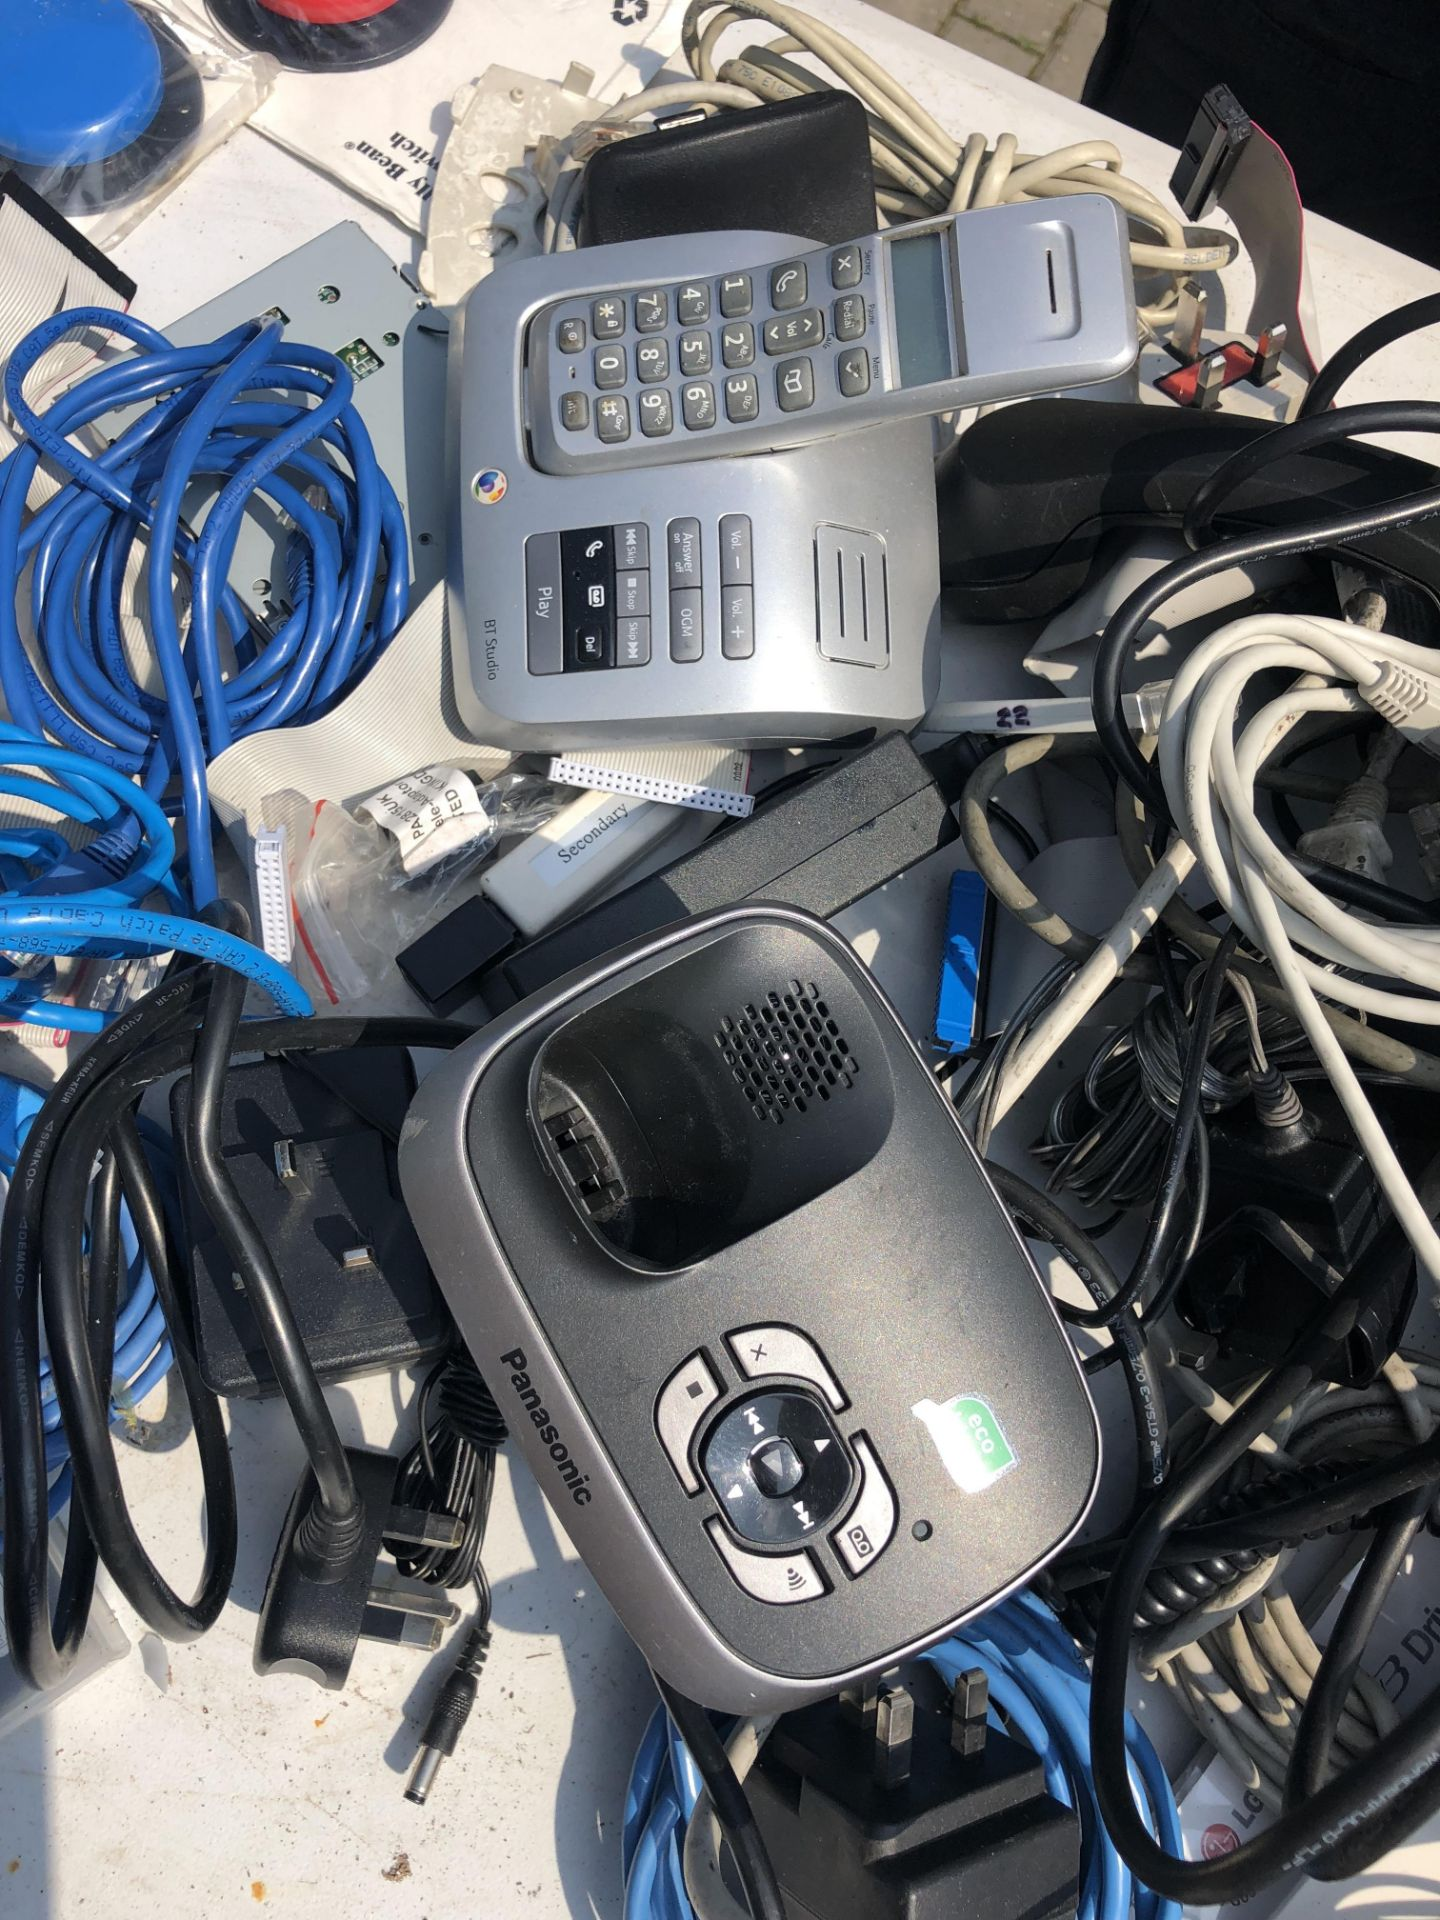 Lot 468 - JOB LOT OF OFFICE EQUIPMENT INCLUDES PHONES MODEMS ETHERNET CABLES LAPTOP CHARGERS ETC